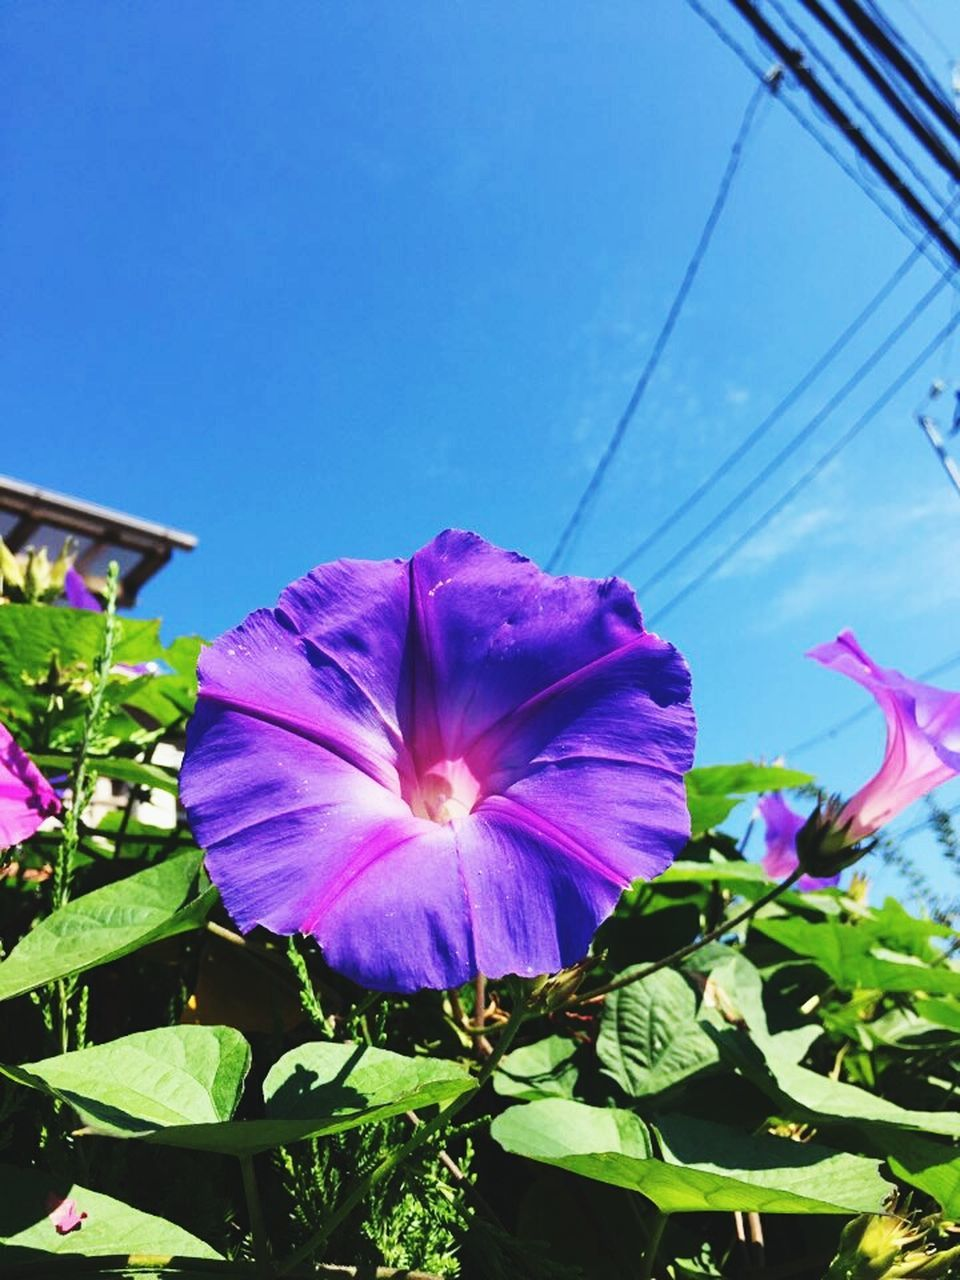 flower, fragility, petal, growth, beauty in nature, plant, nature, freshness, no people, day, flower head, leaf, outdoors, blooming, sunlight, close-up, low angle view, blue, sky, petunia